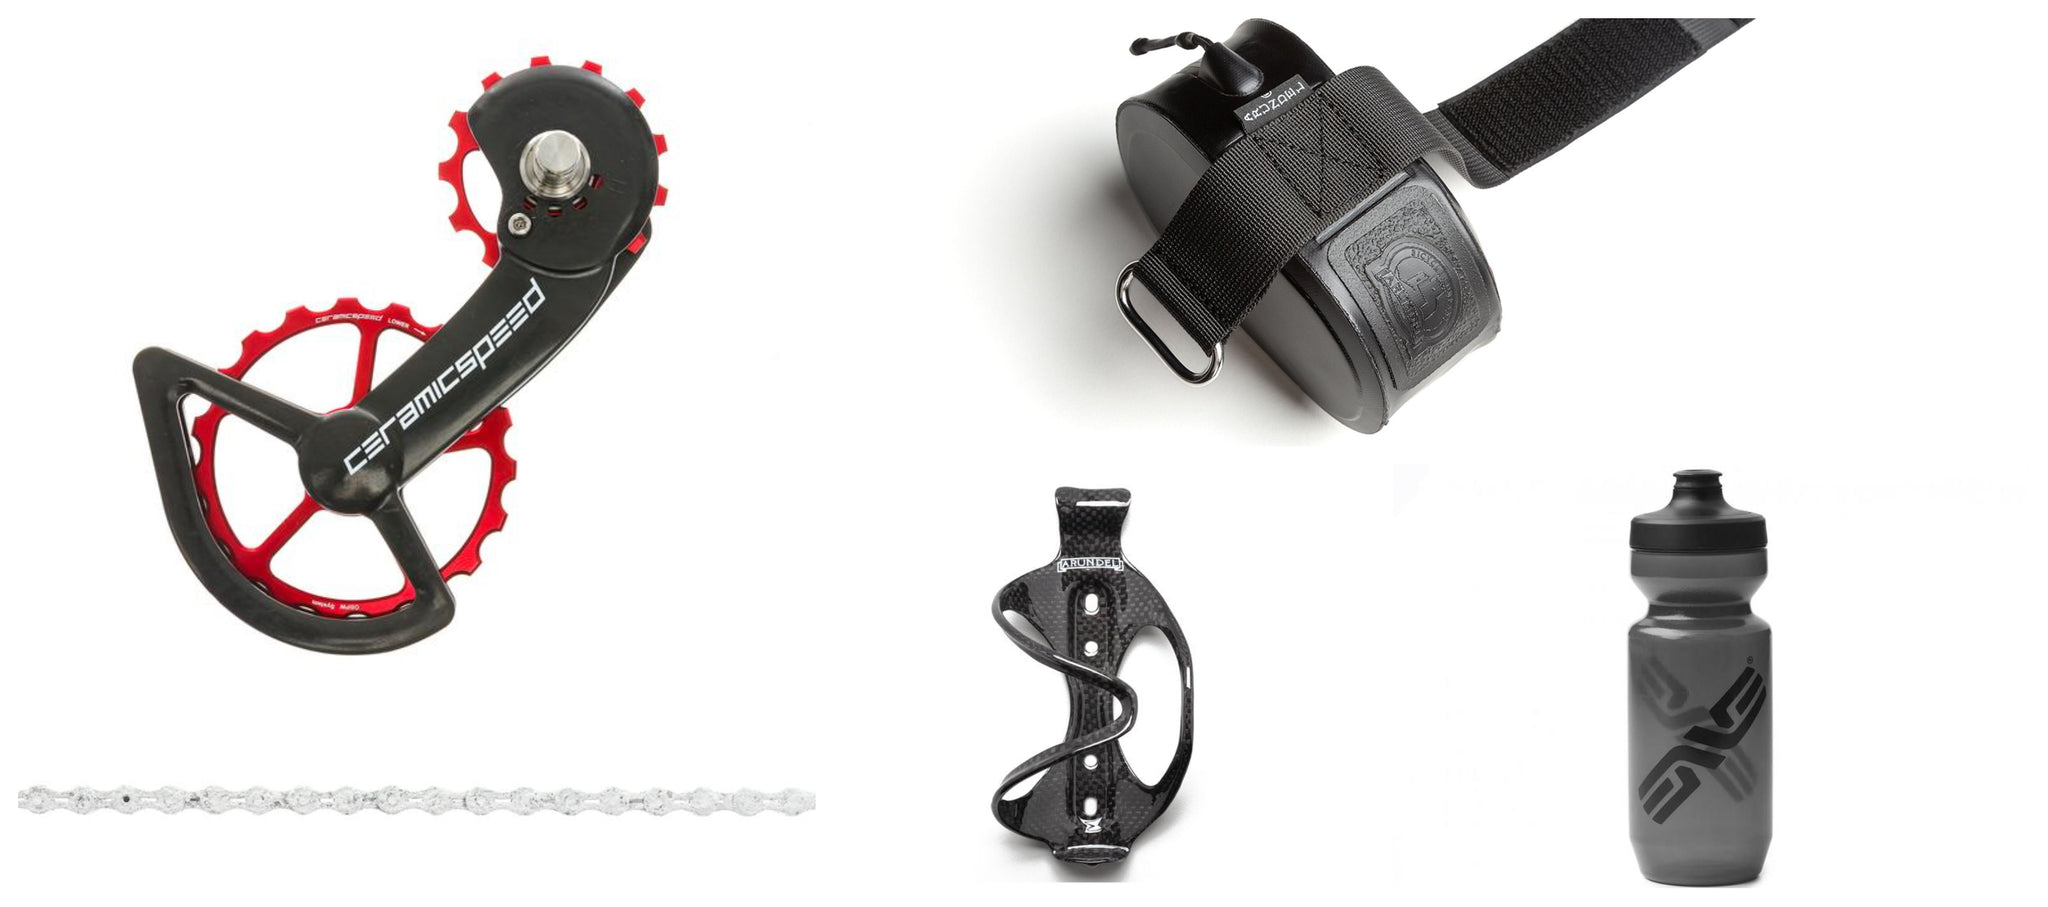 CeramicSpeed OSPW system, UFO Chain, and Arundel carbon bottle cages